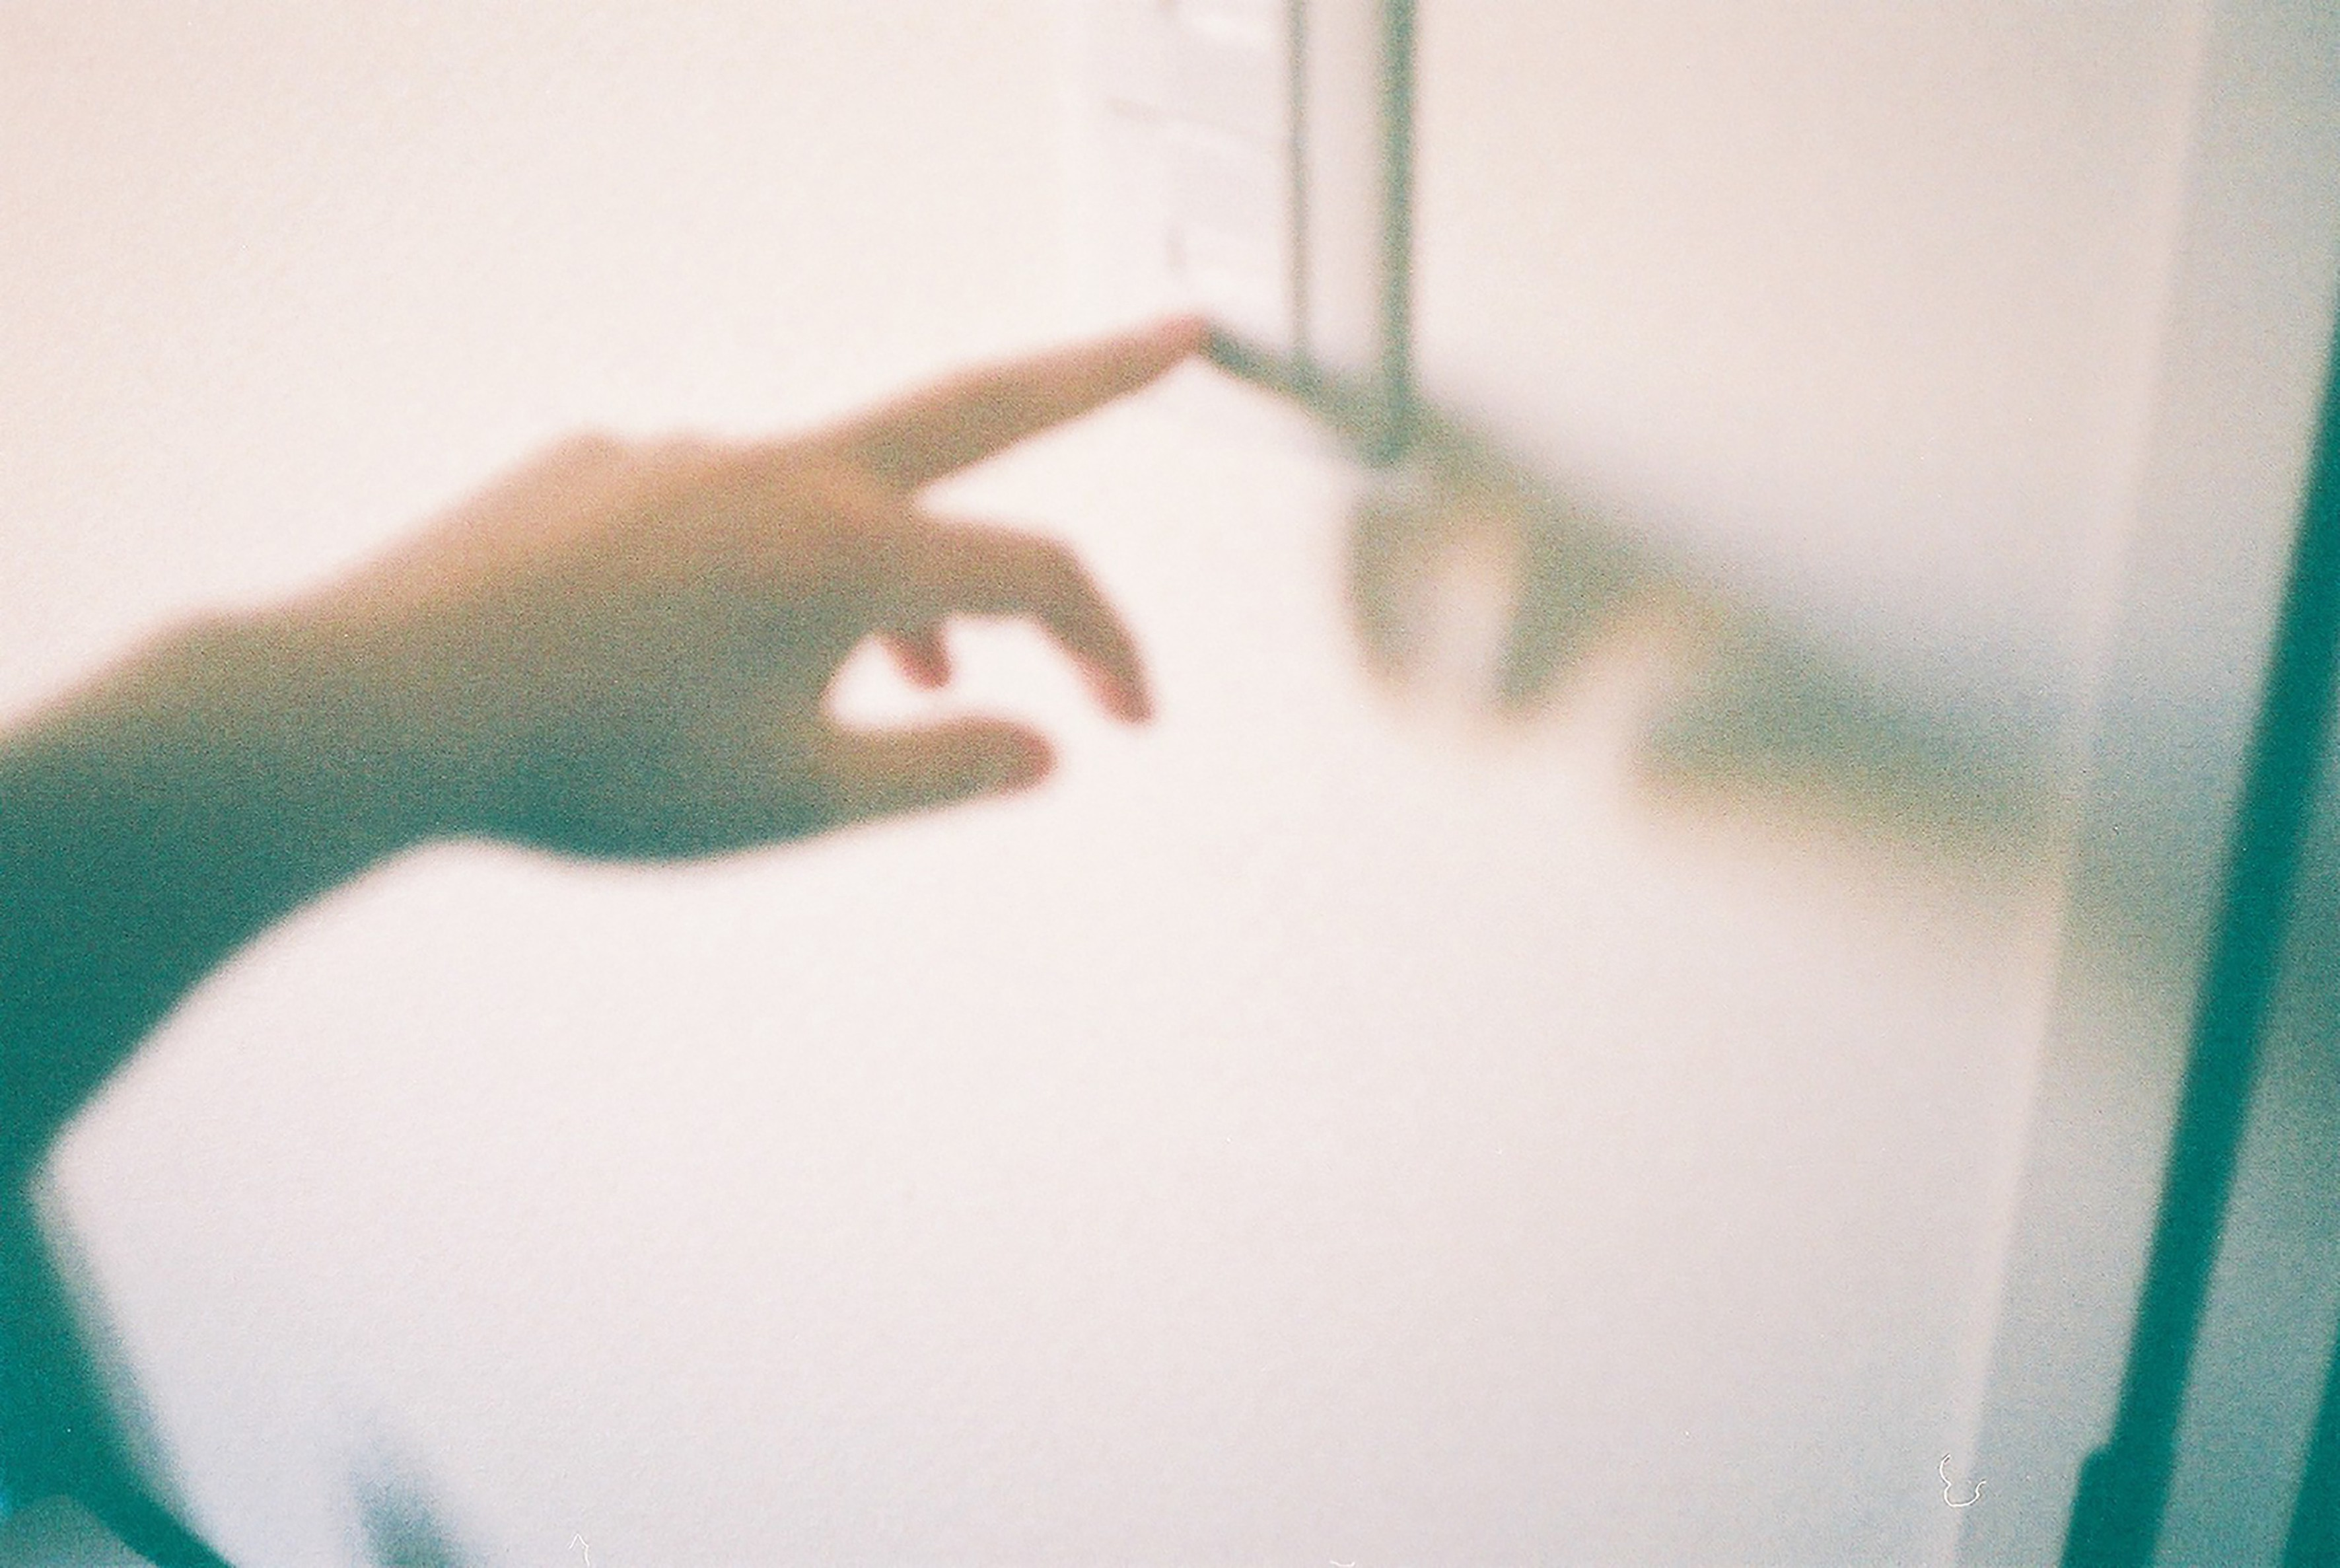 A washed out grainy image of a person touching a light switch.